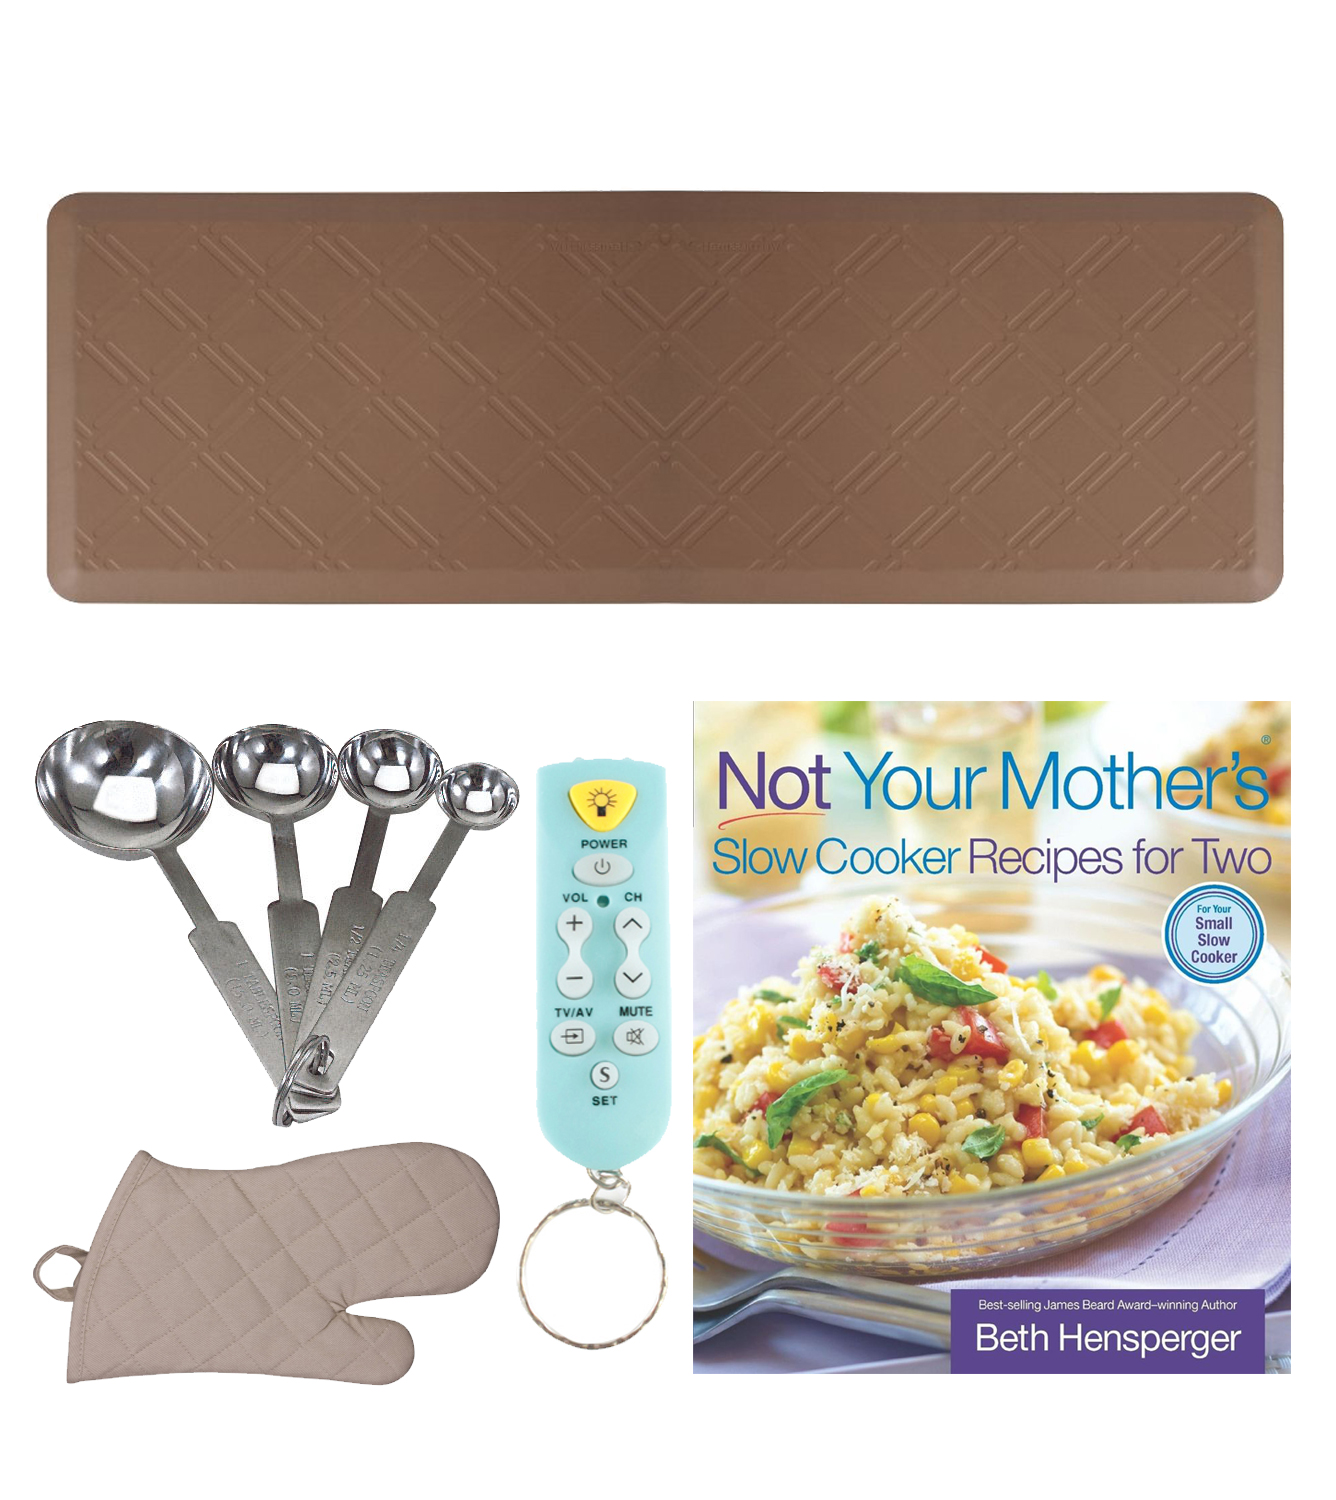 WellnessMats 6' x 2' Anti-Fatigue Bella Motif Floor Mat (Brown) Kitchen Bundle